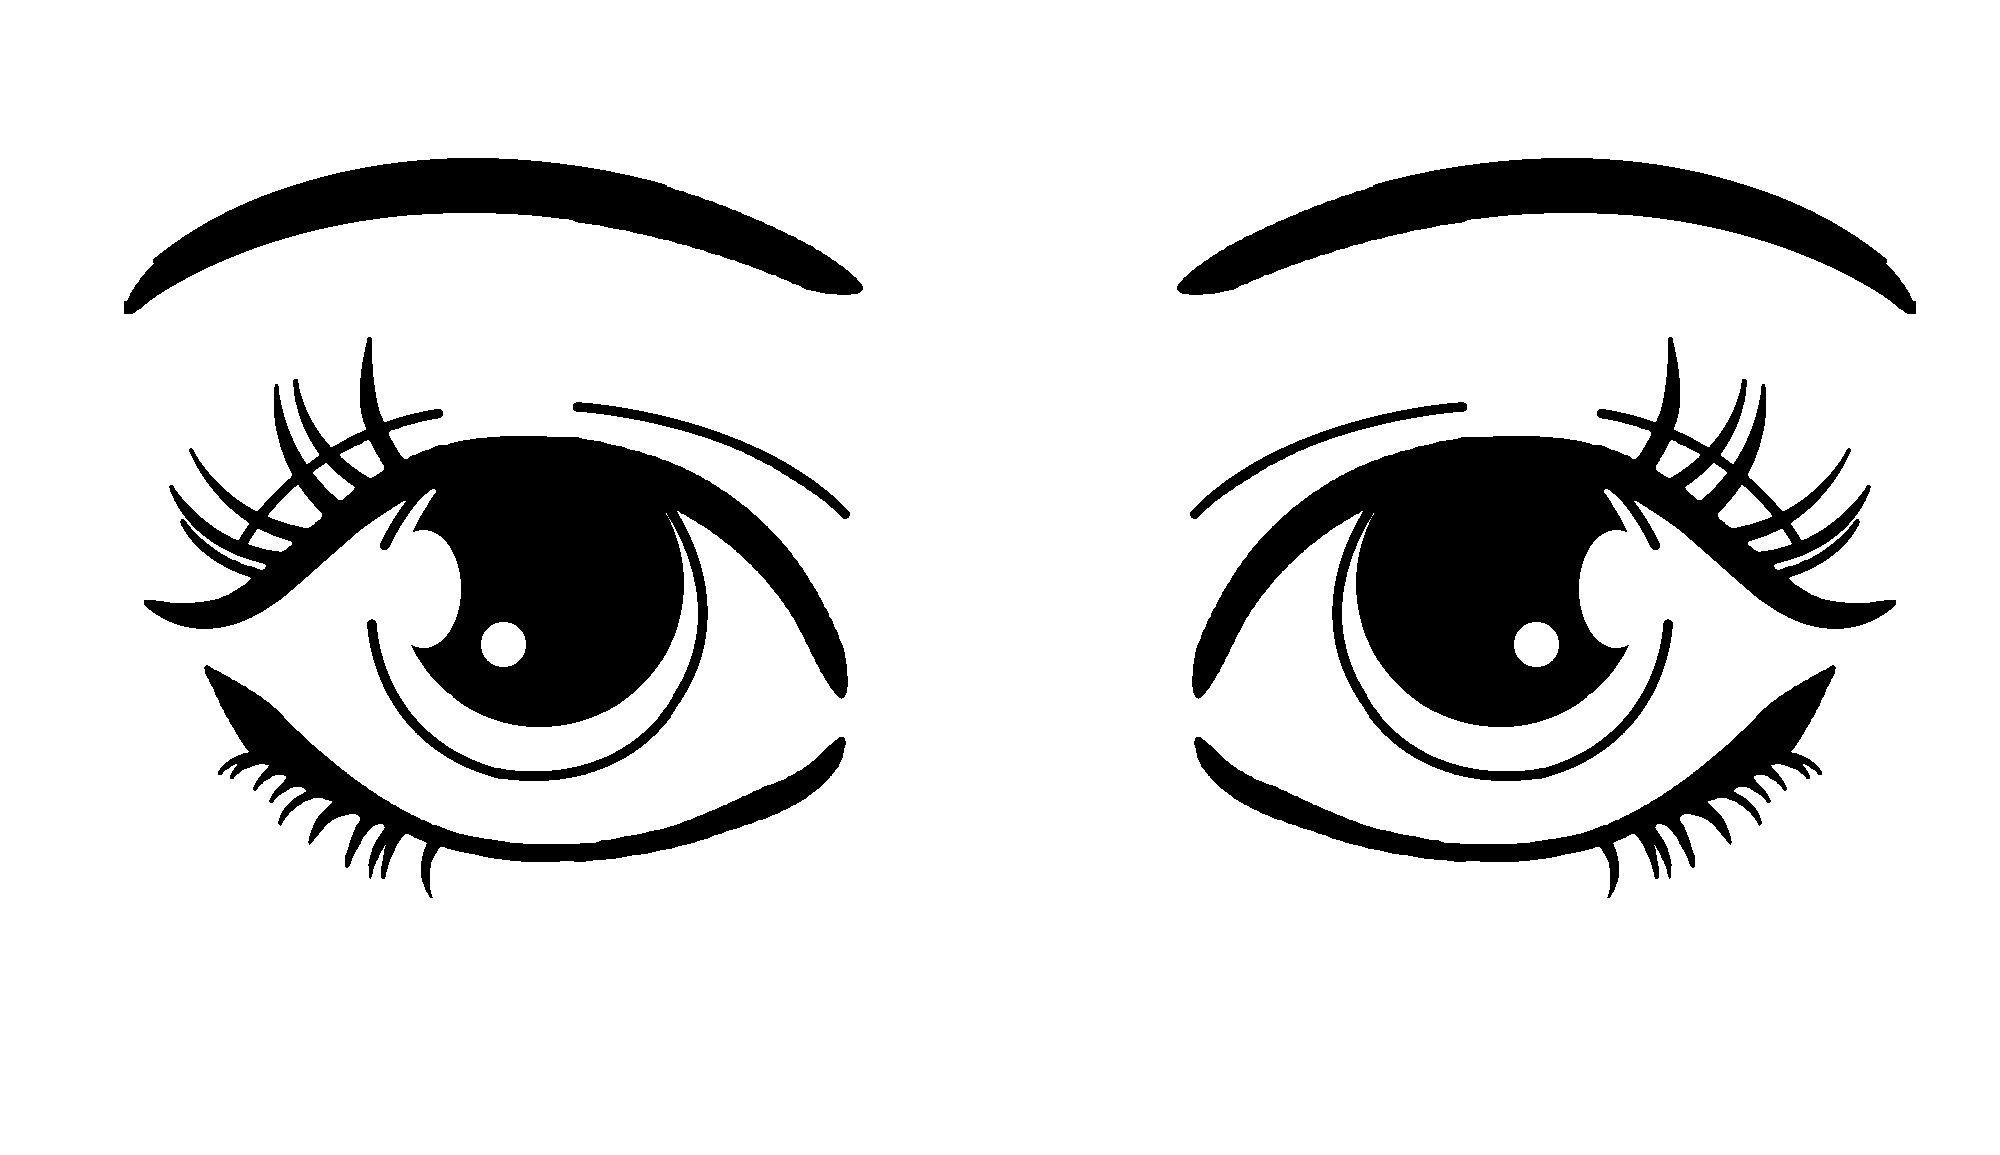 Free cartoon eyeballs cliparts. Eyeball clipart vigilant clip art download